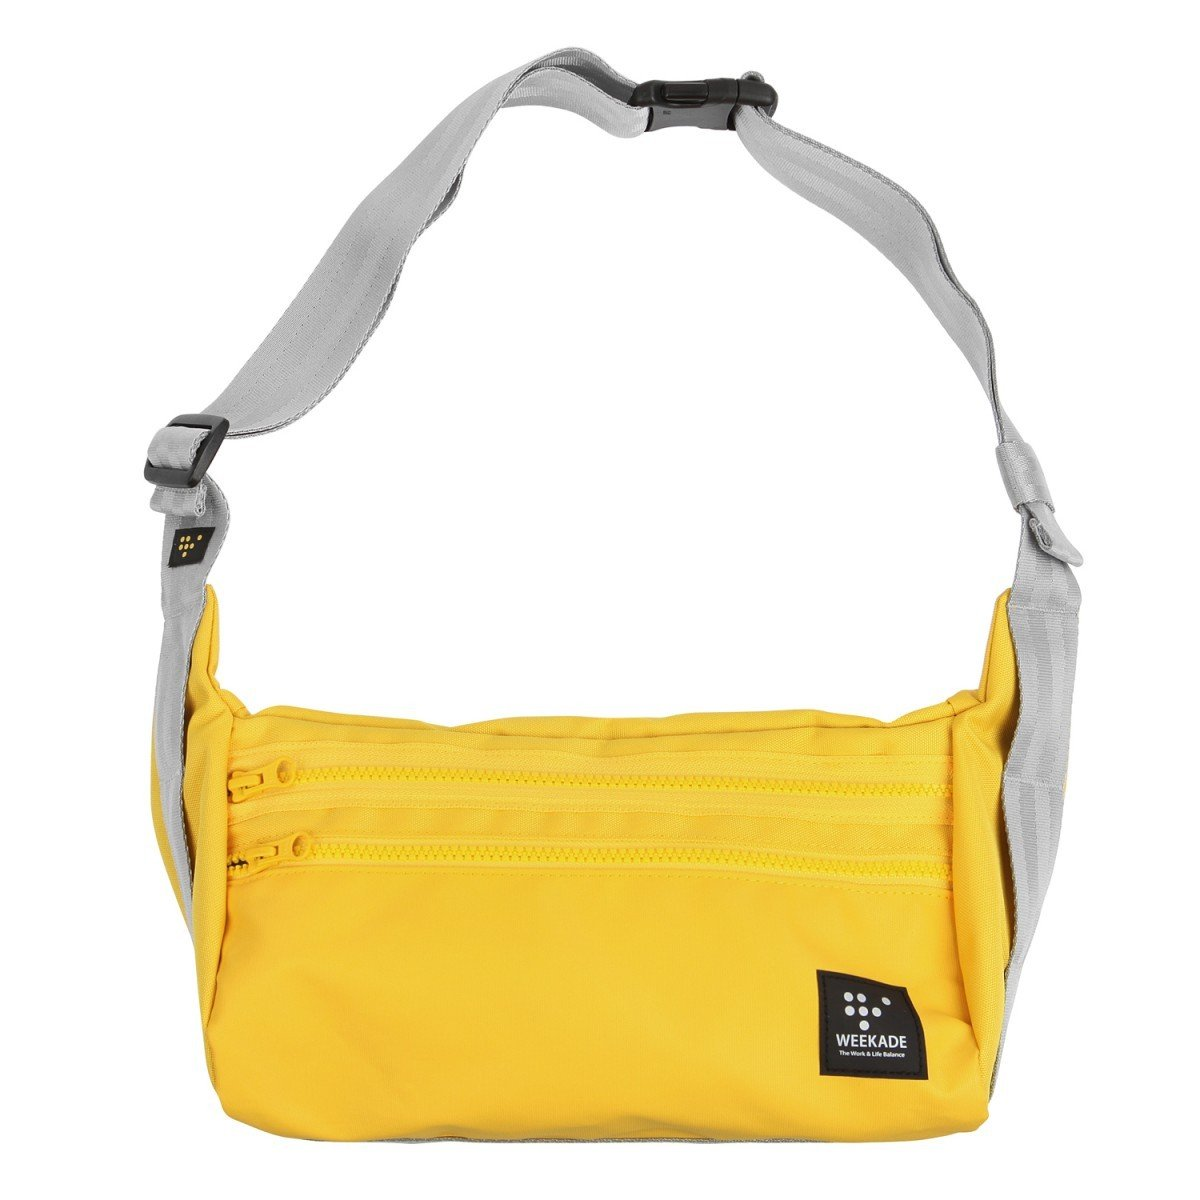 WEEKADE LET'S MAIL BAG - 輕便斜揹袋 - Yellow